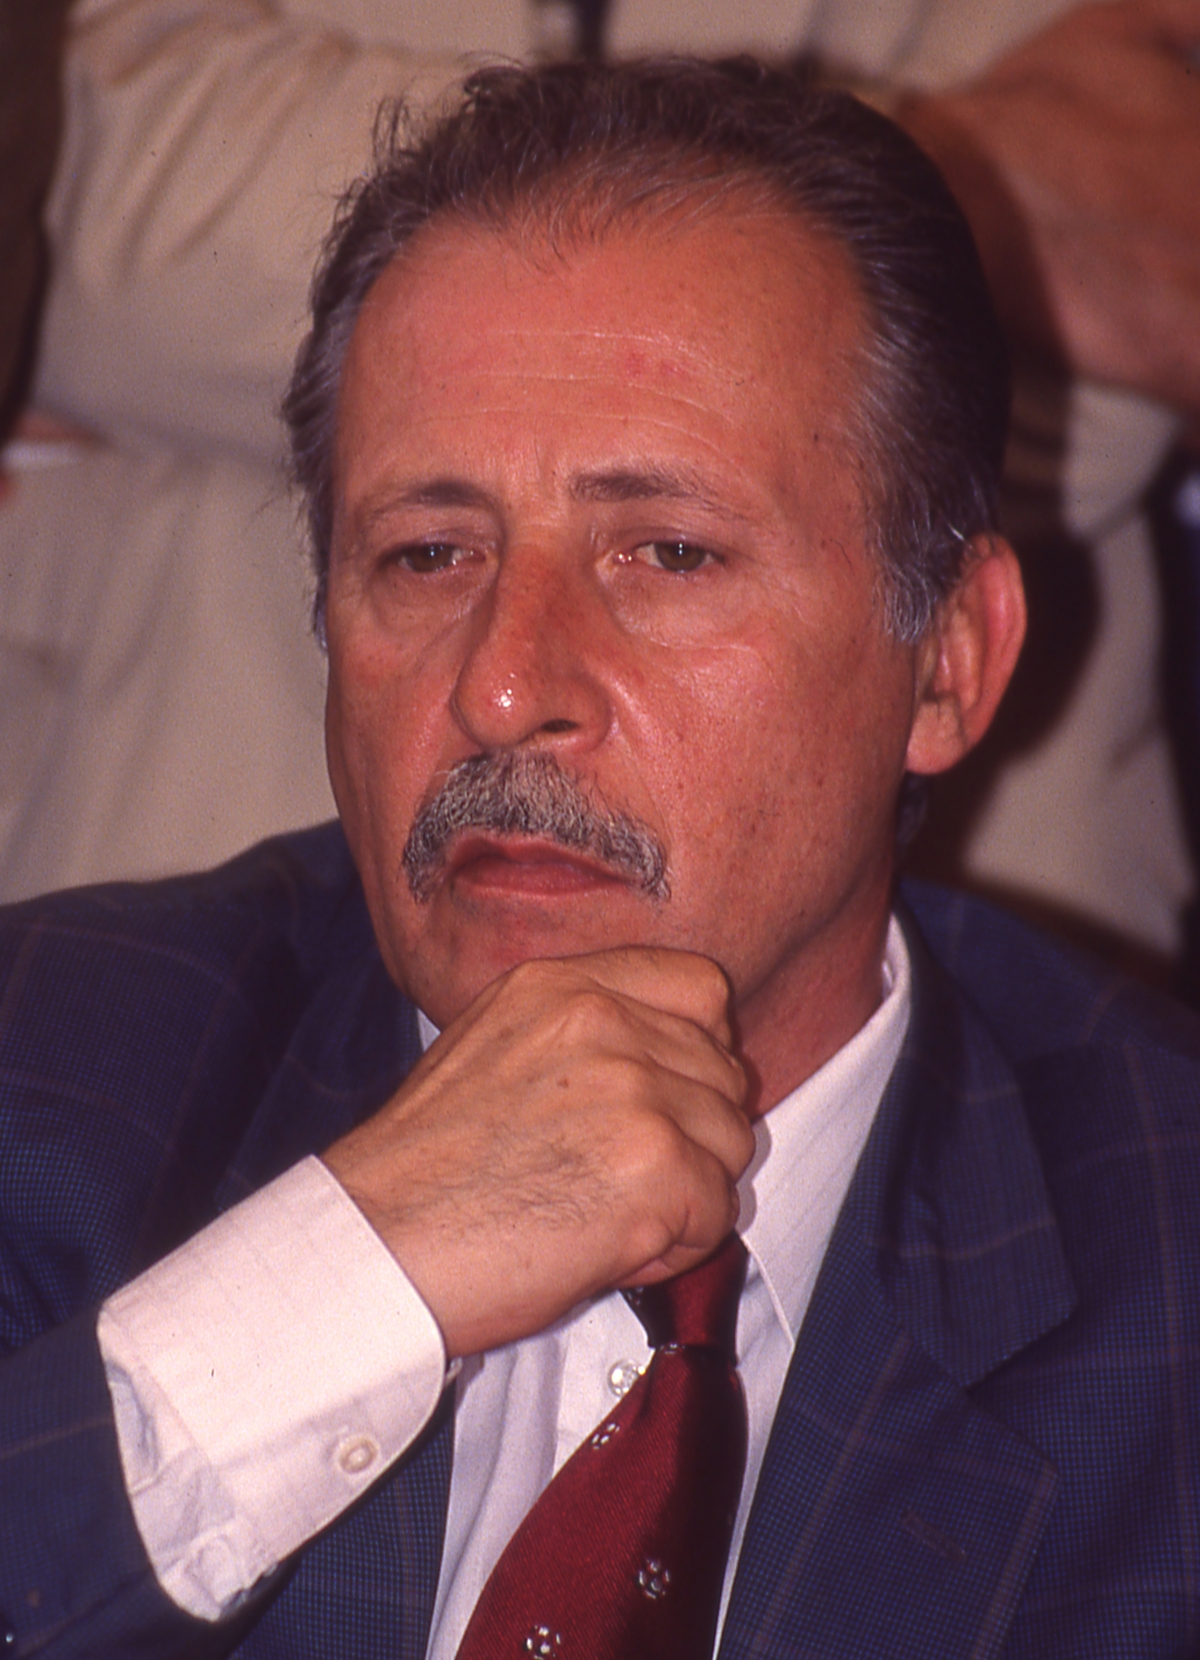 paolo borsellino - photo #2